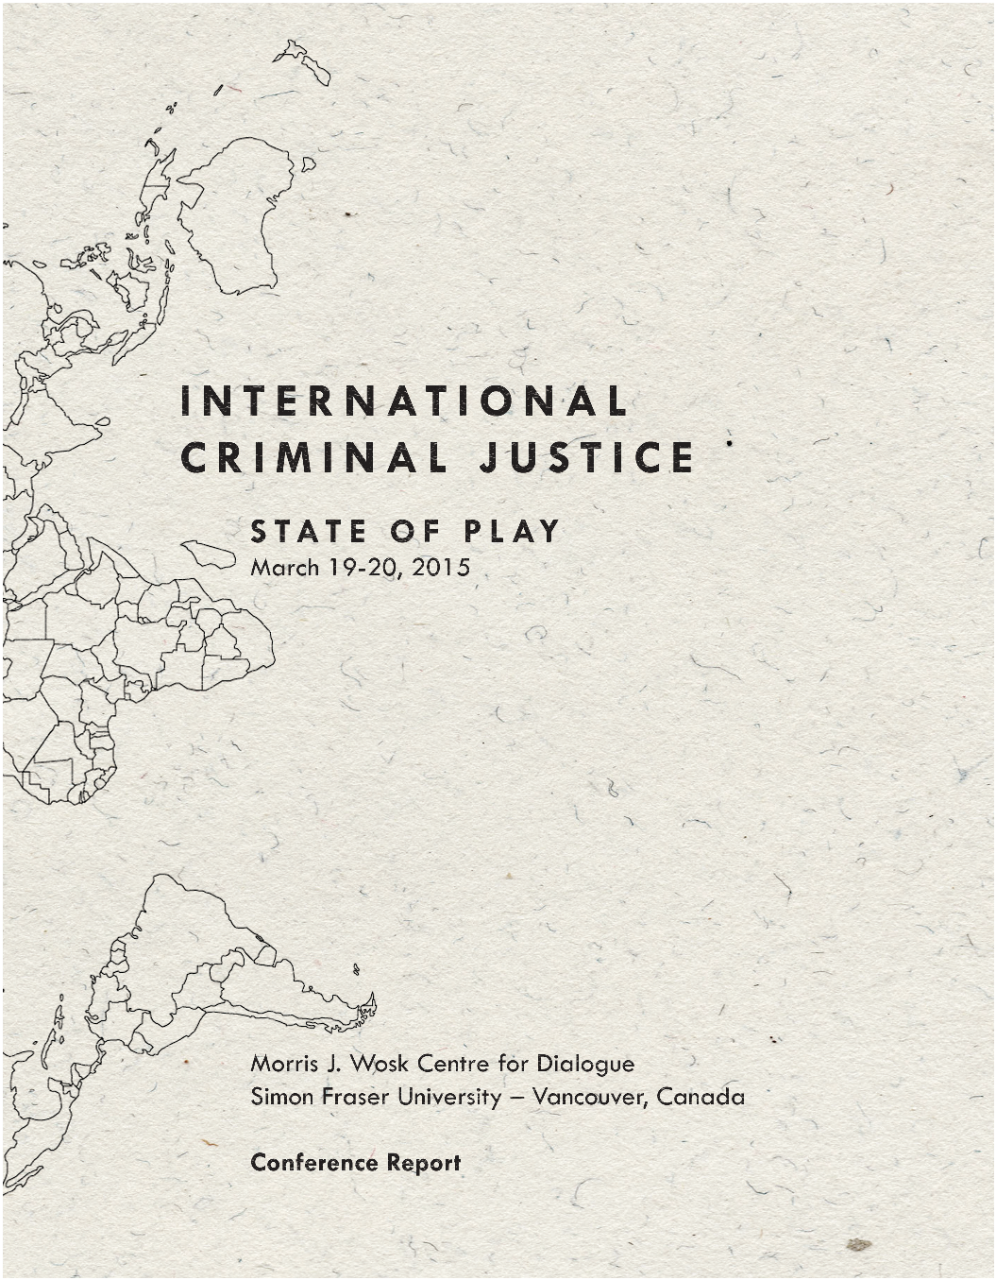 International Criminal Justice